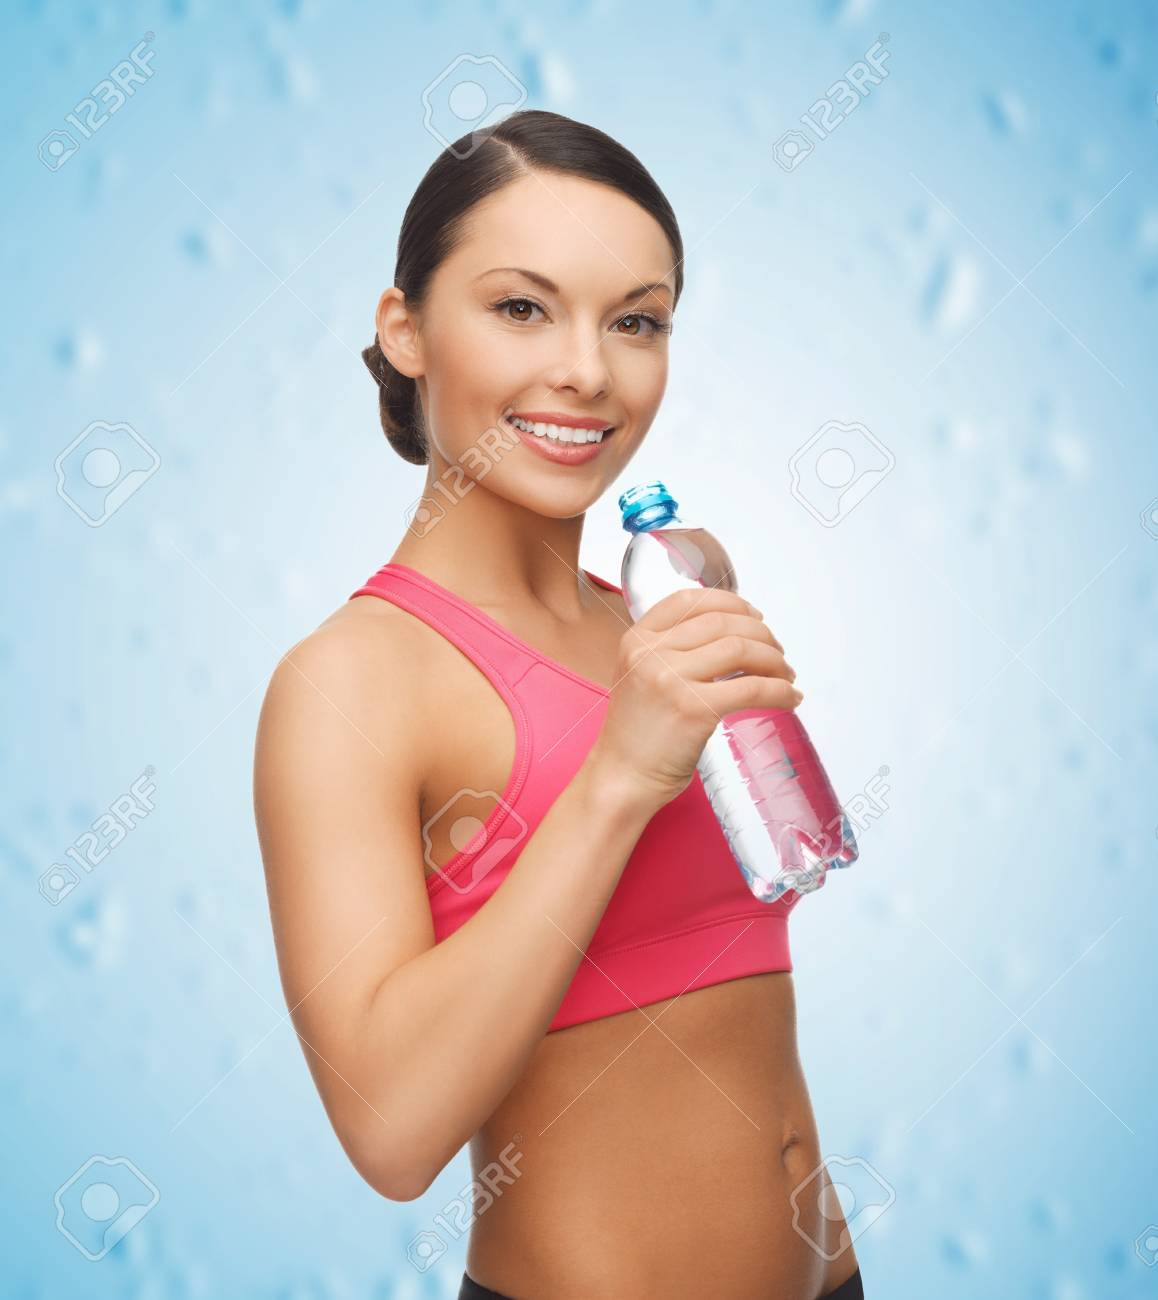 picture of sporty woman drinking water from bottle Stock Photo - 18822401